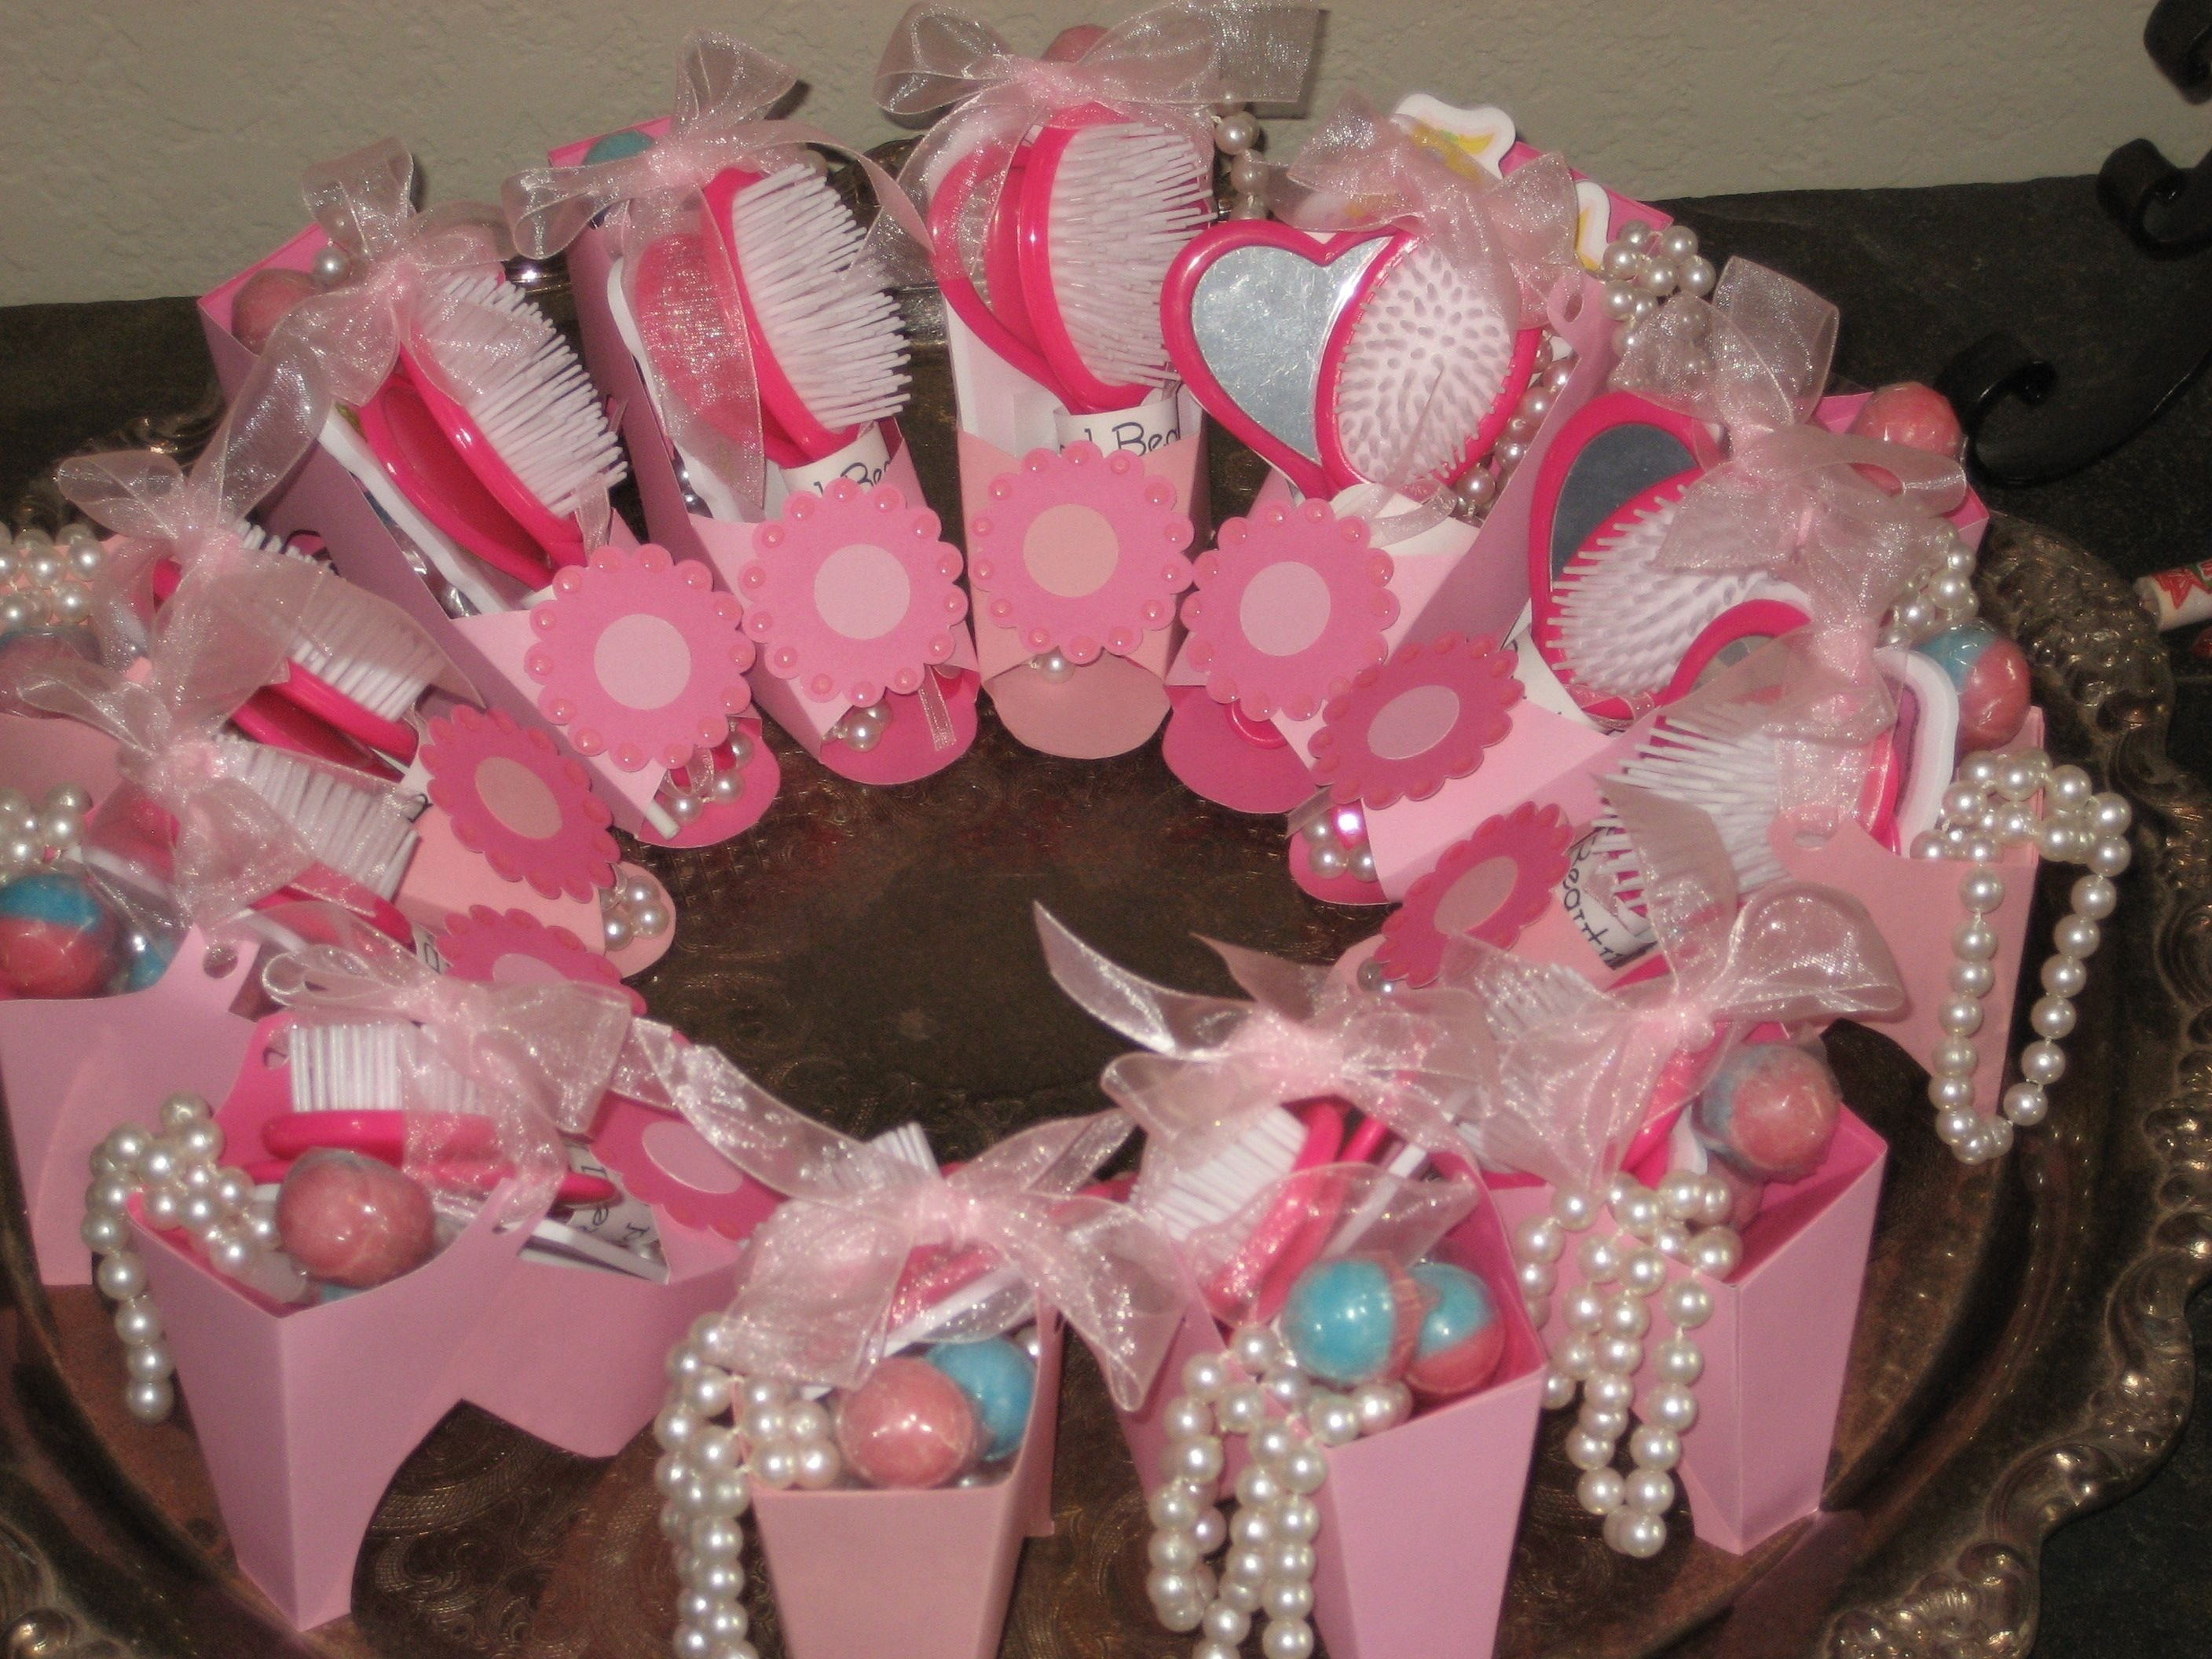 10 Most Popular Spa Party Ideas For Little Girls little girl spa party supplies each books 5 each purse 3 each 1 2020